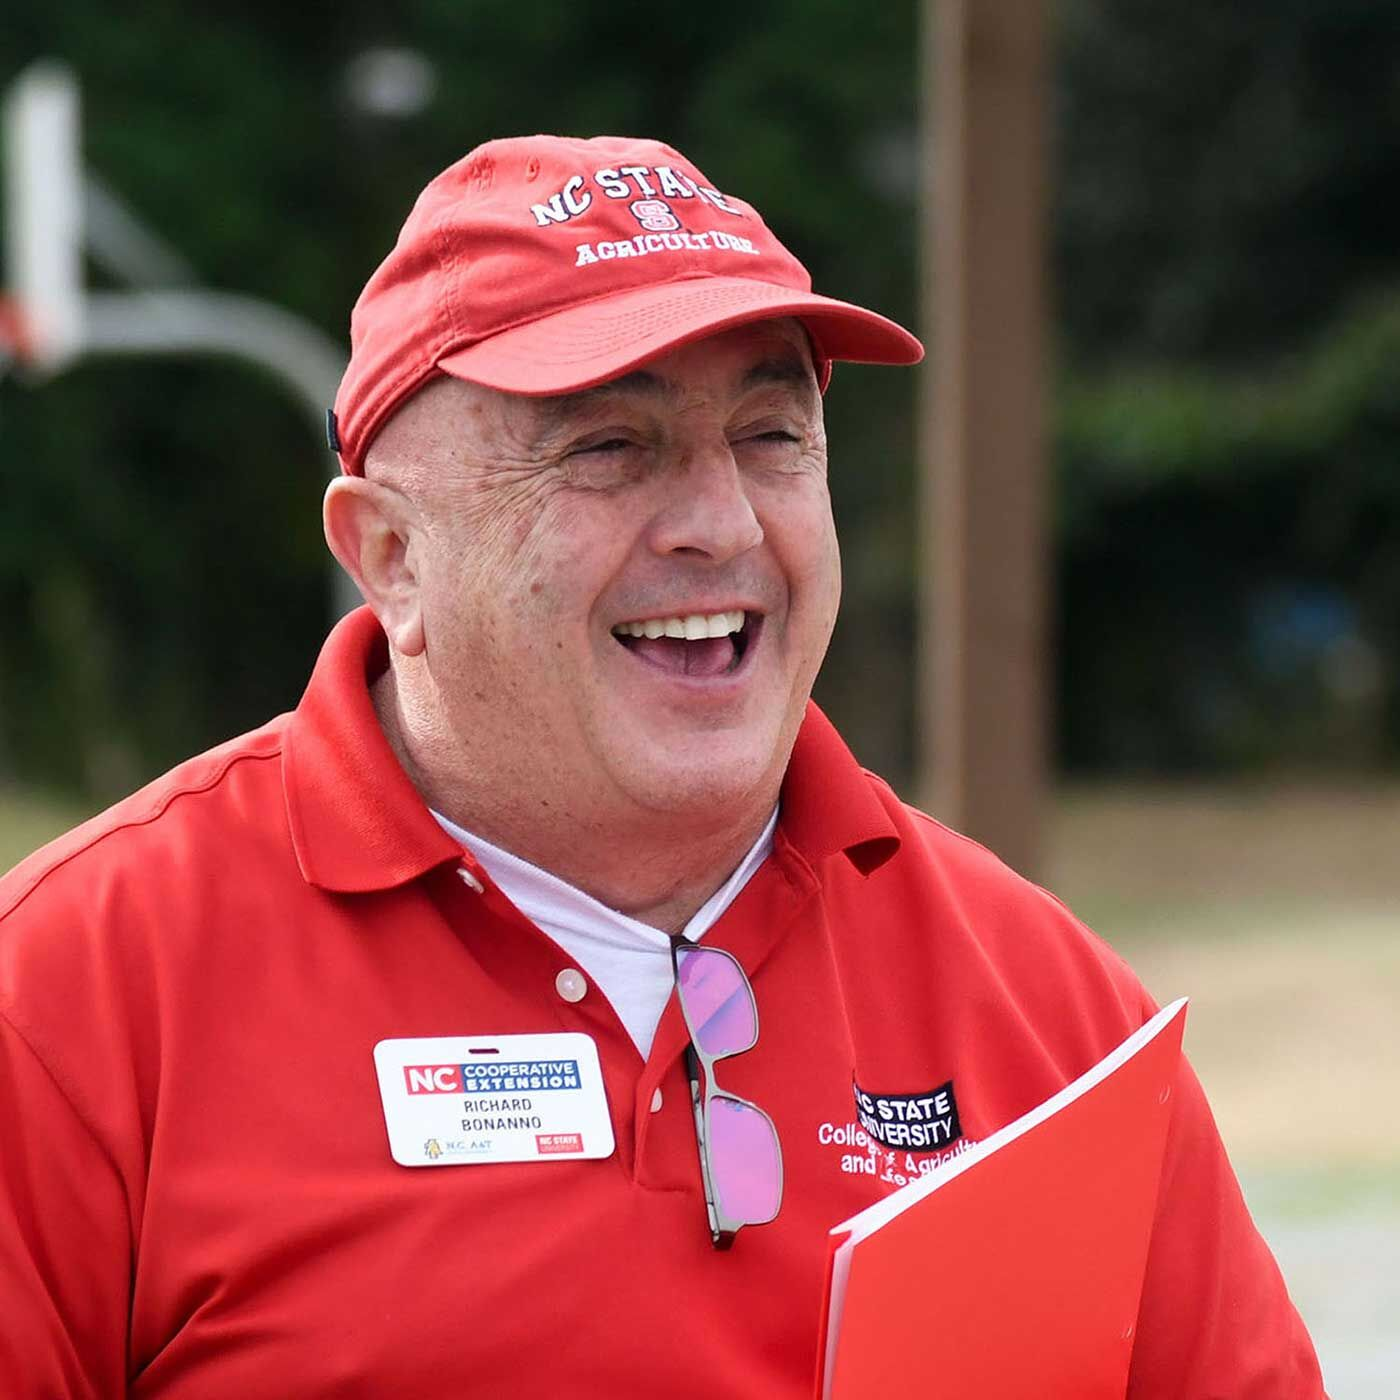 One-on-One with NC State Extension's Rich Bonanno